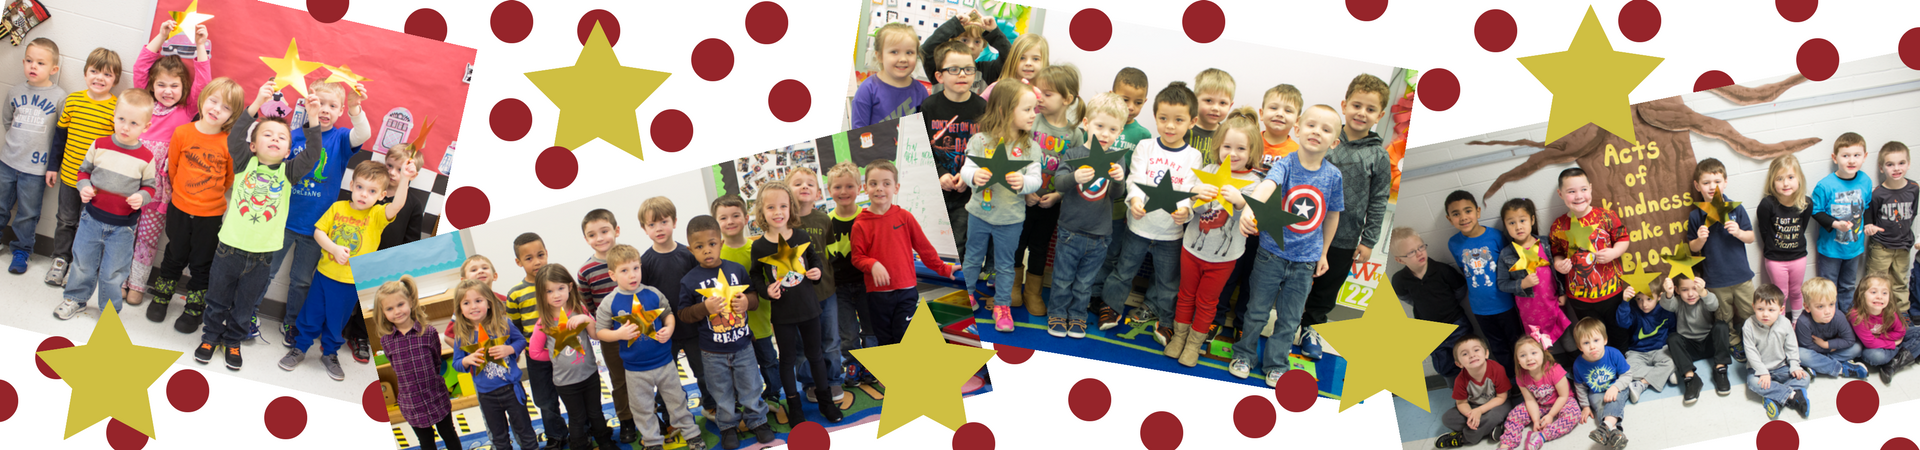 Russell Preschool is a 5 STAR TOP QUALITY recognized program!